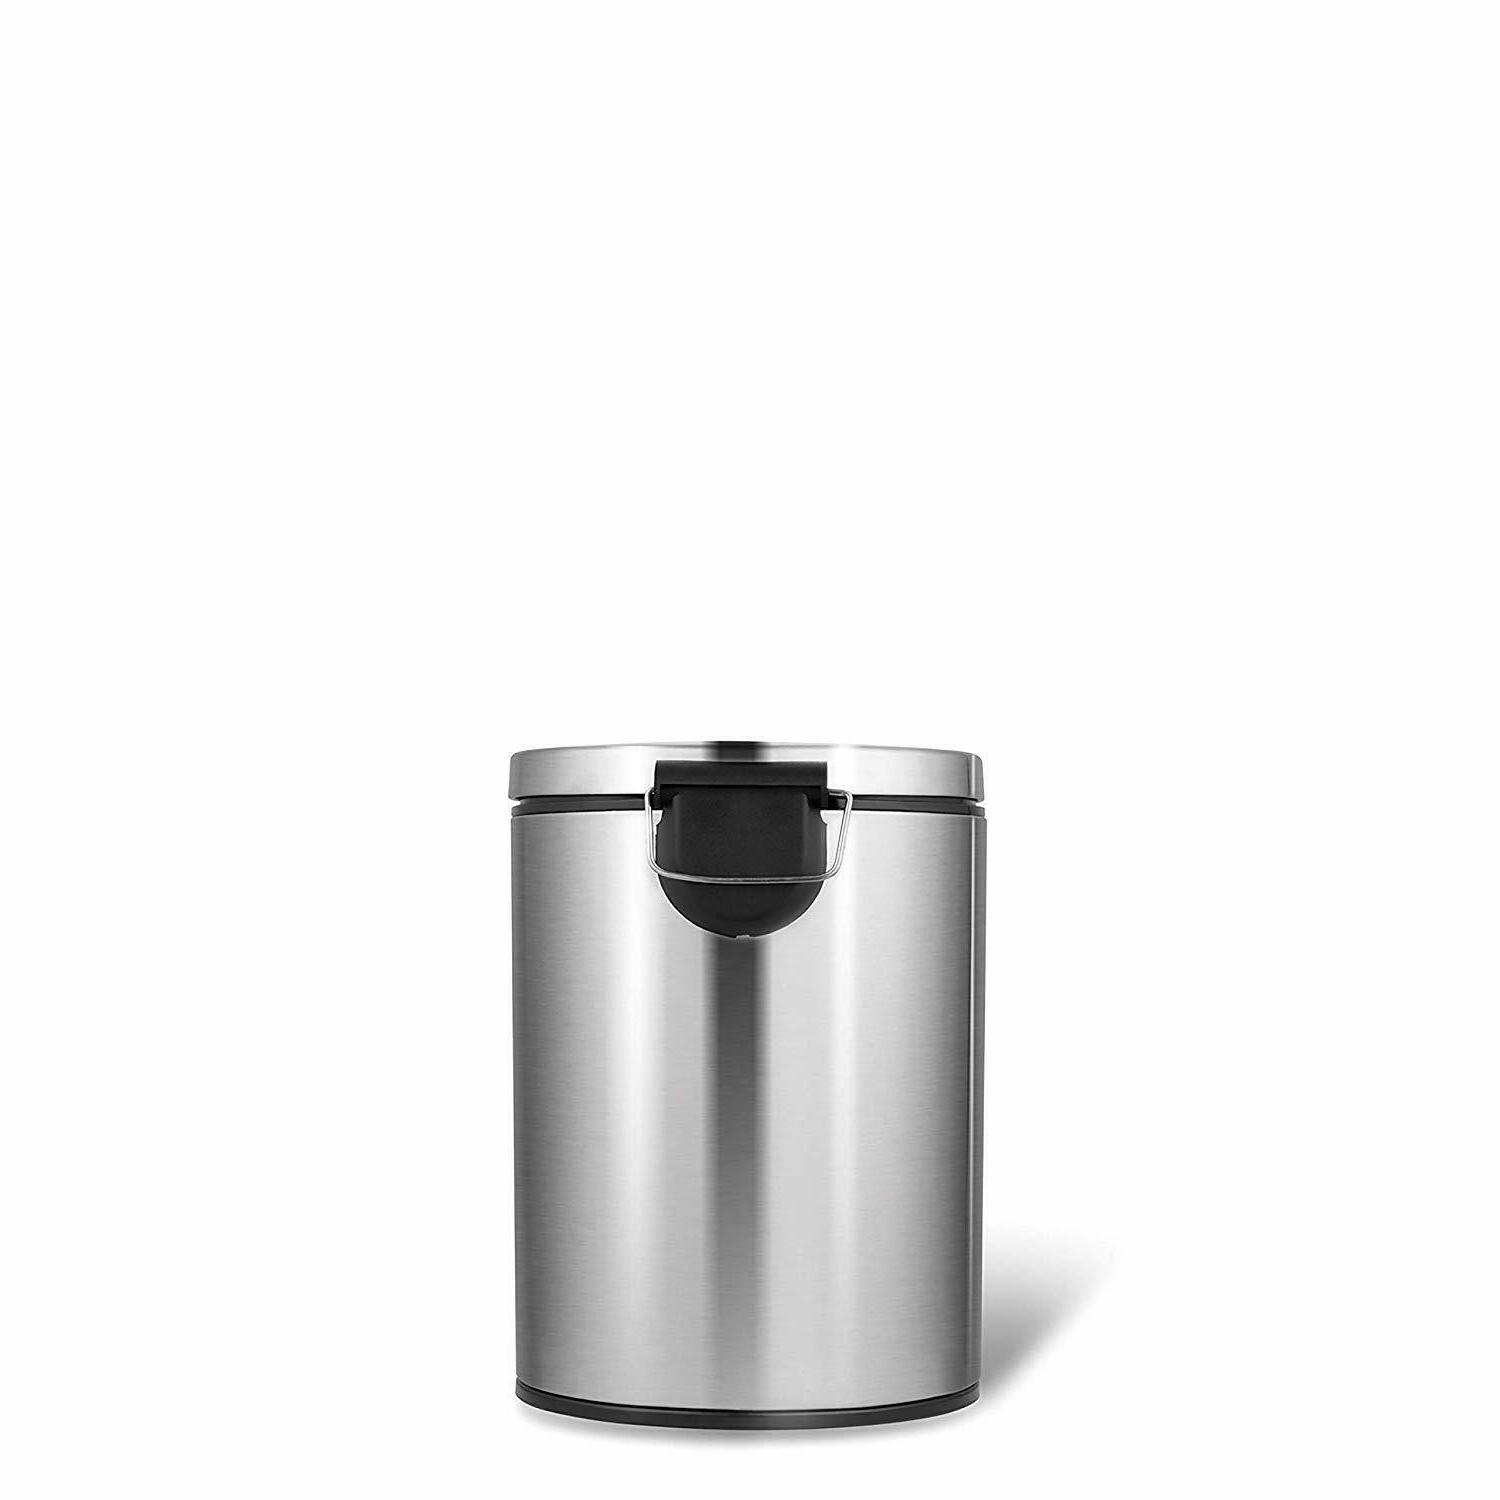 GARBAGE BIN AUTOMATIC TOUCHLESS INFRARED SENSOR LID